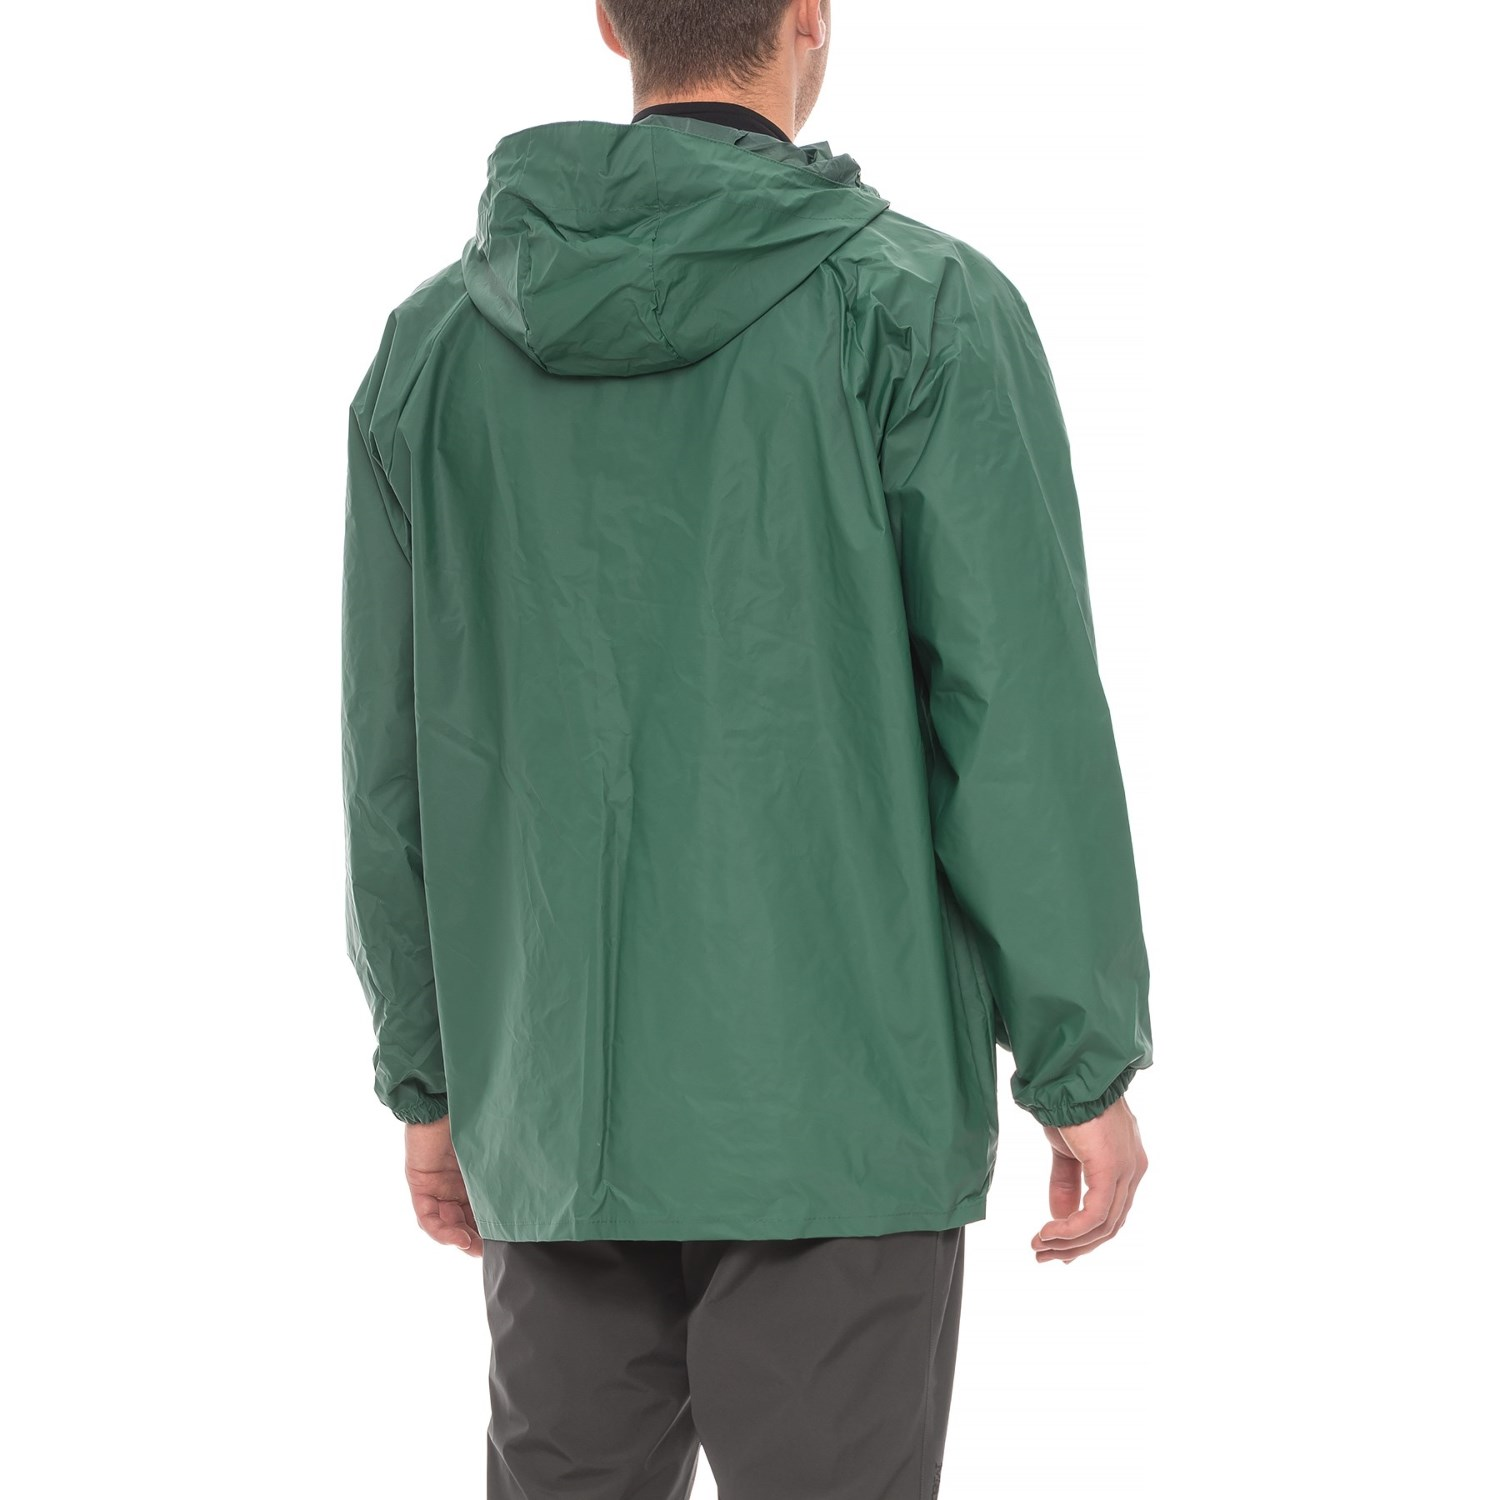 Weatherproof Hooded PVC Rain Jacket (For Men) - Save 39%